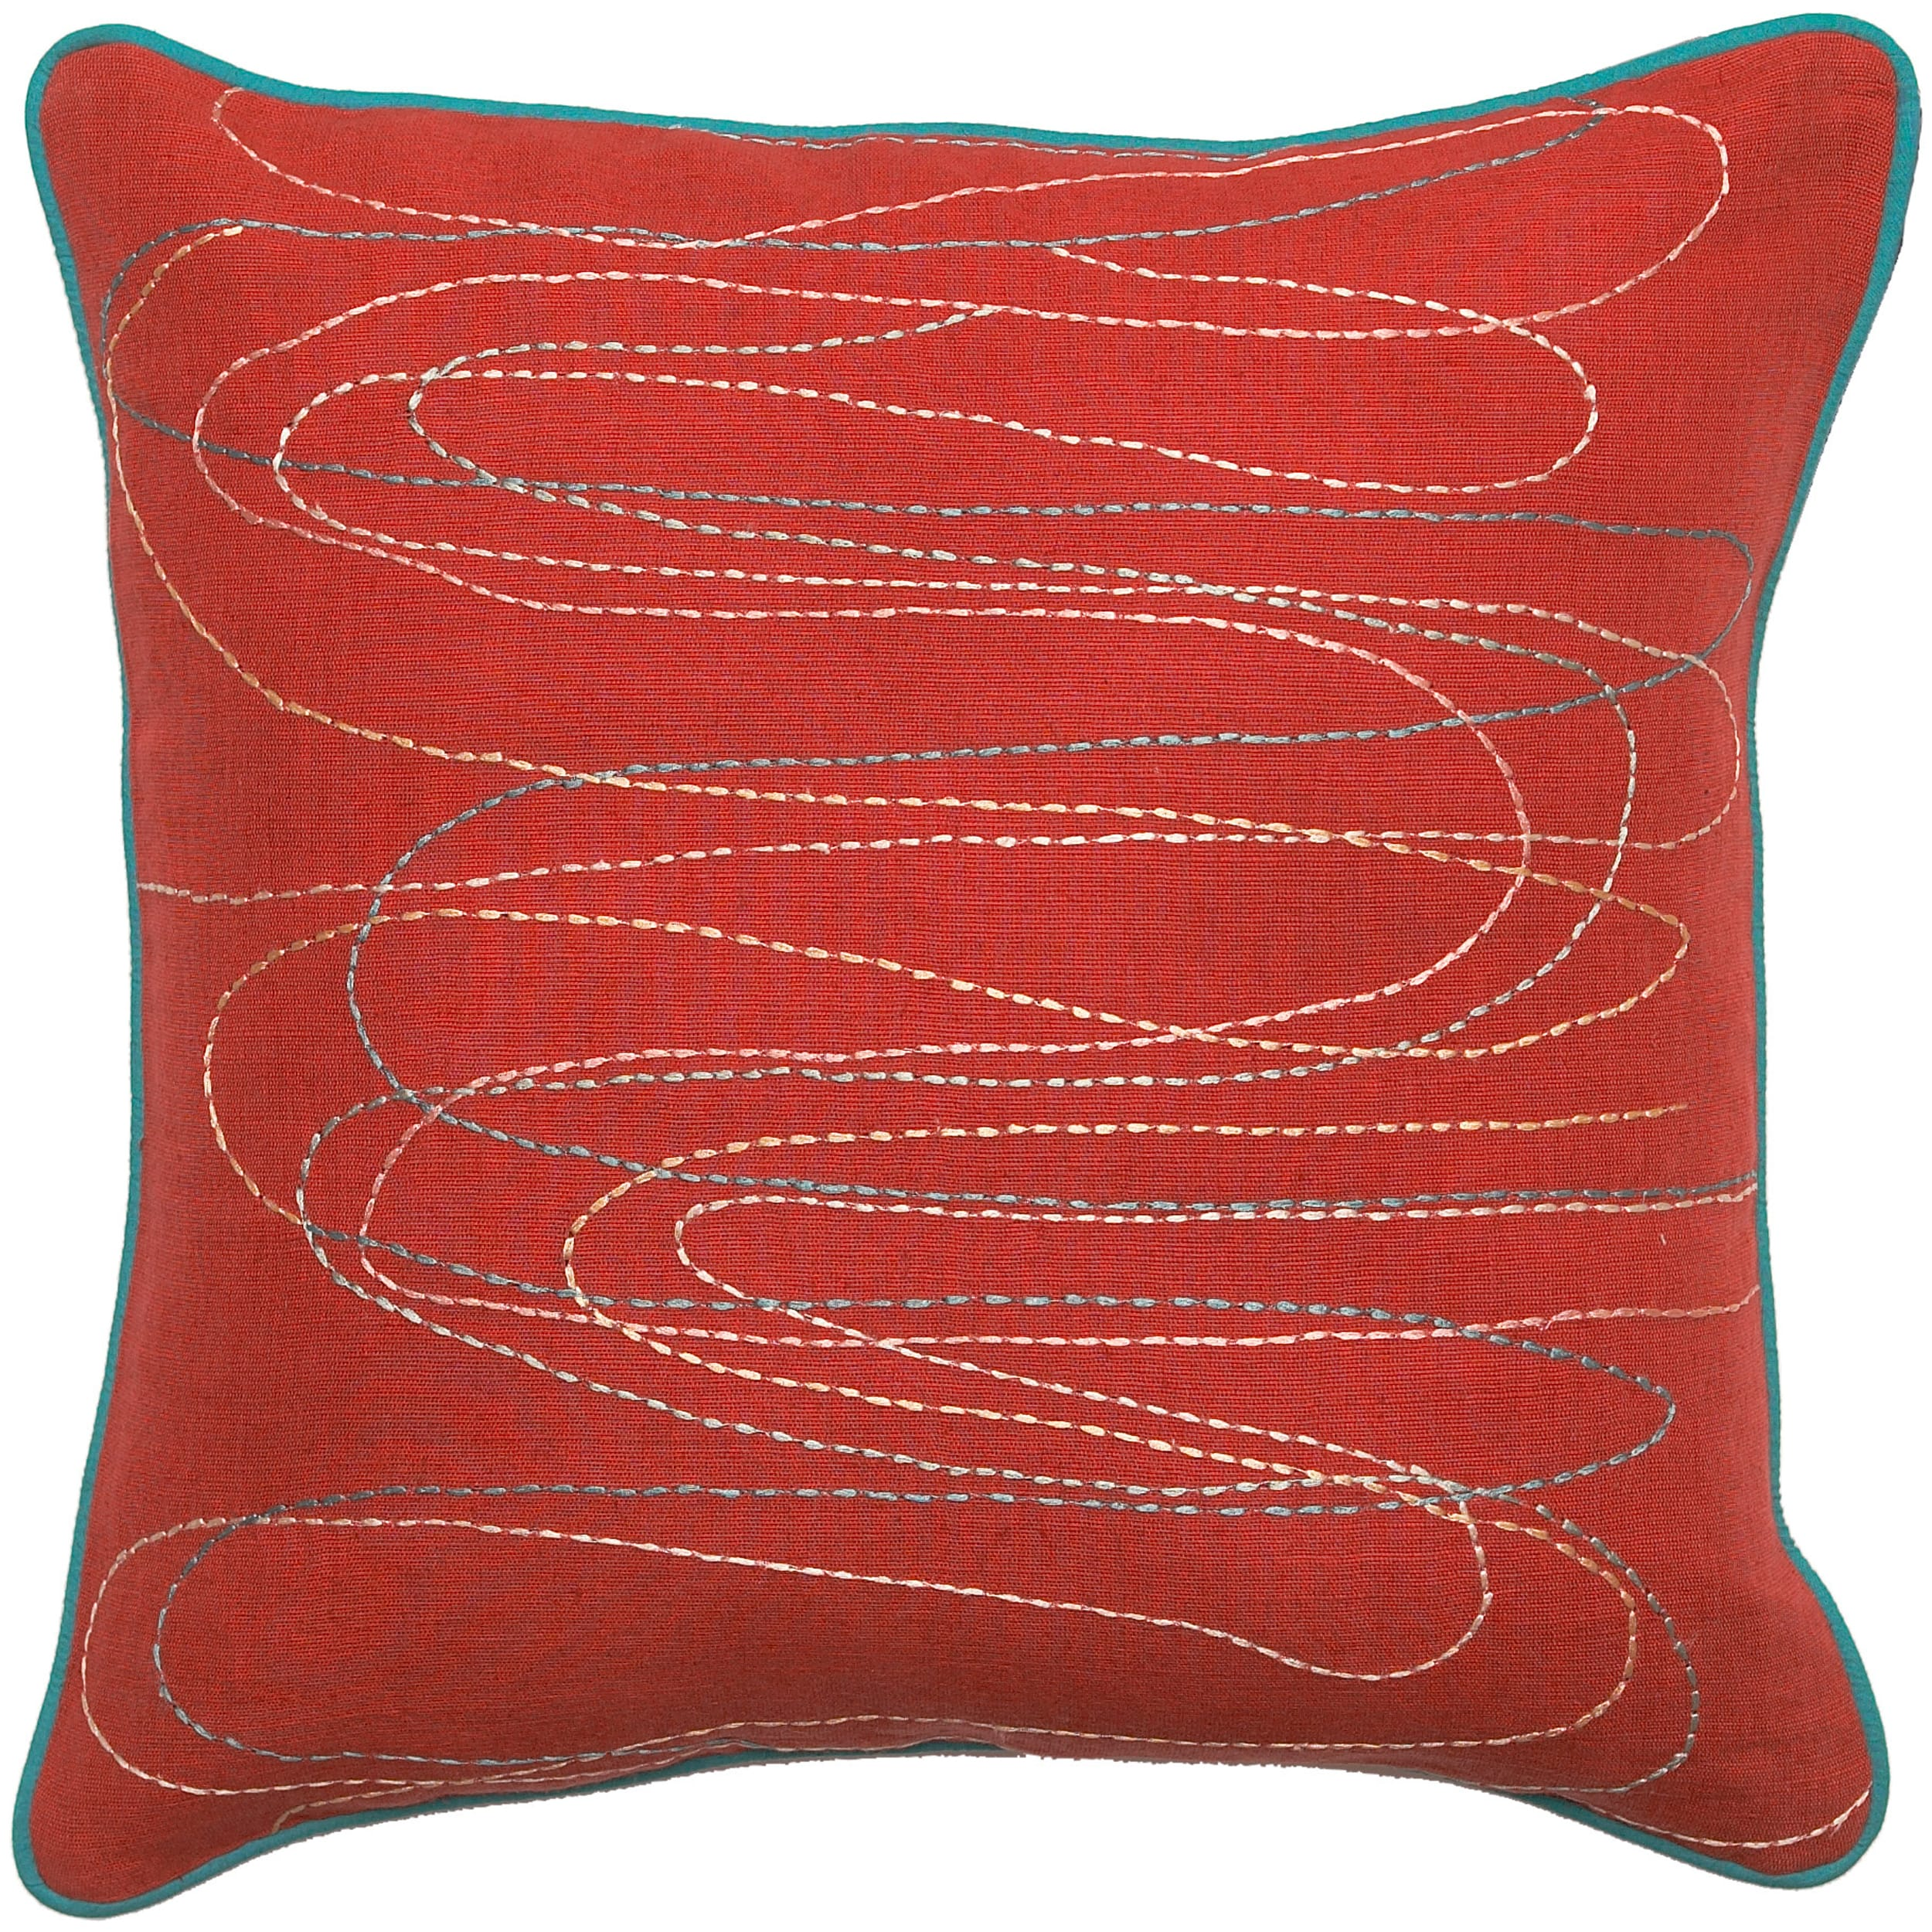 Throw Pillows On Konga : Share: Email